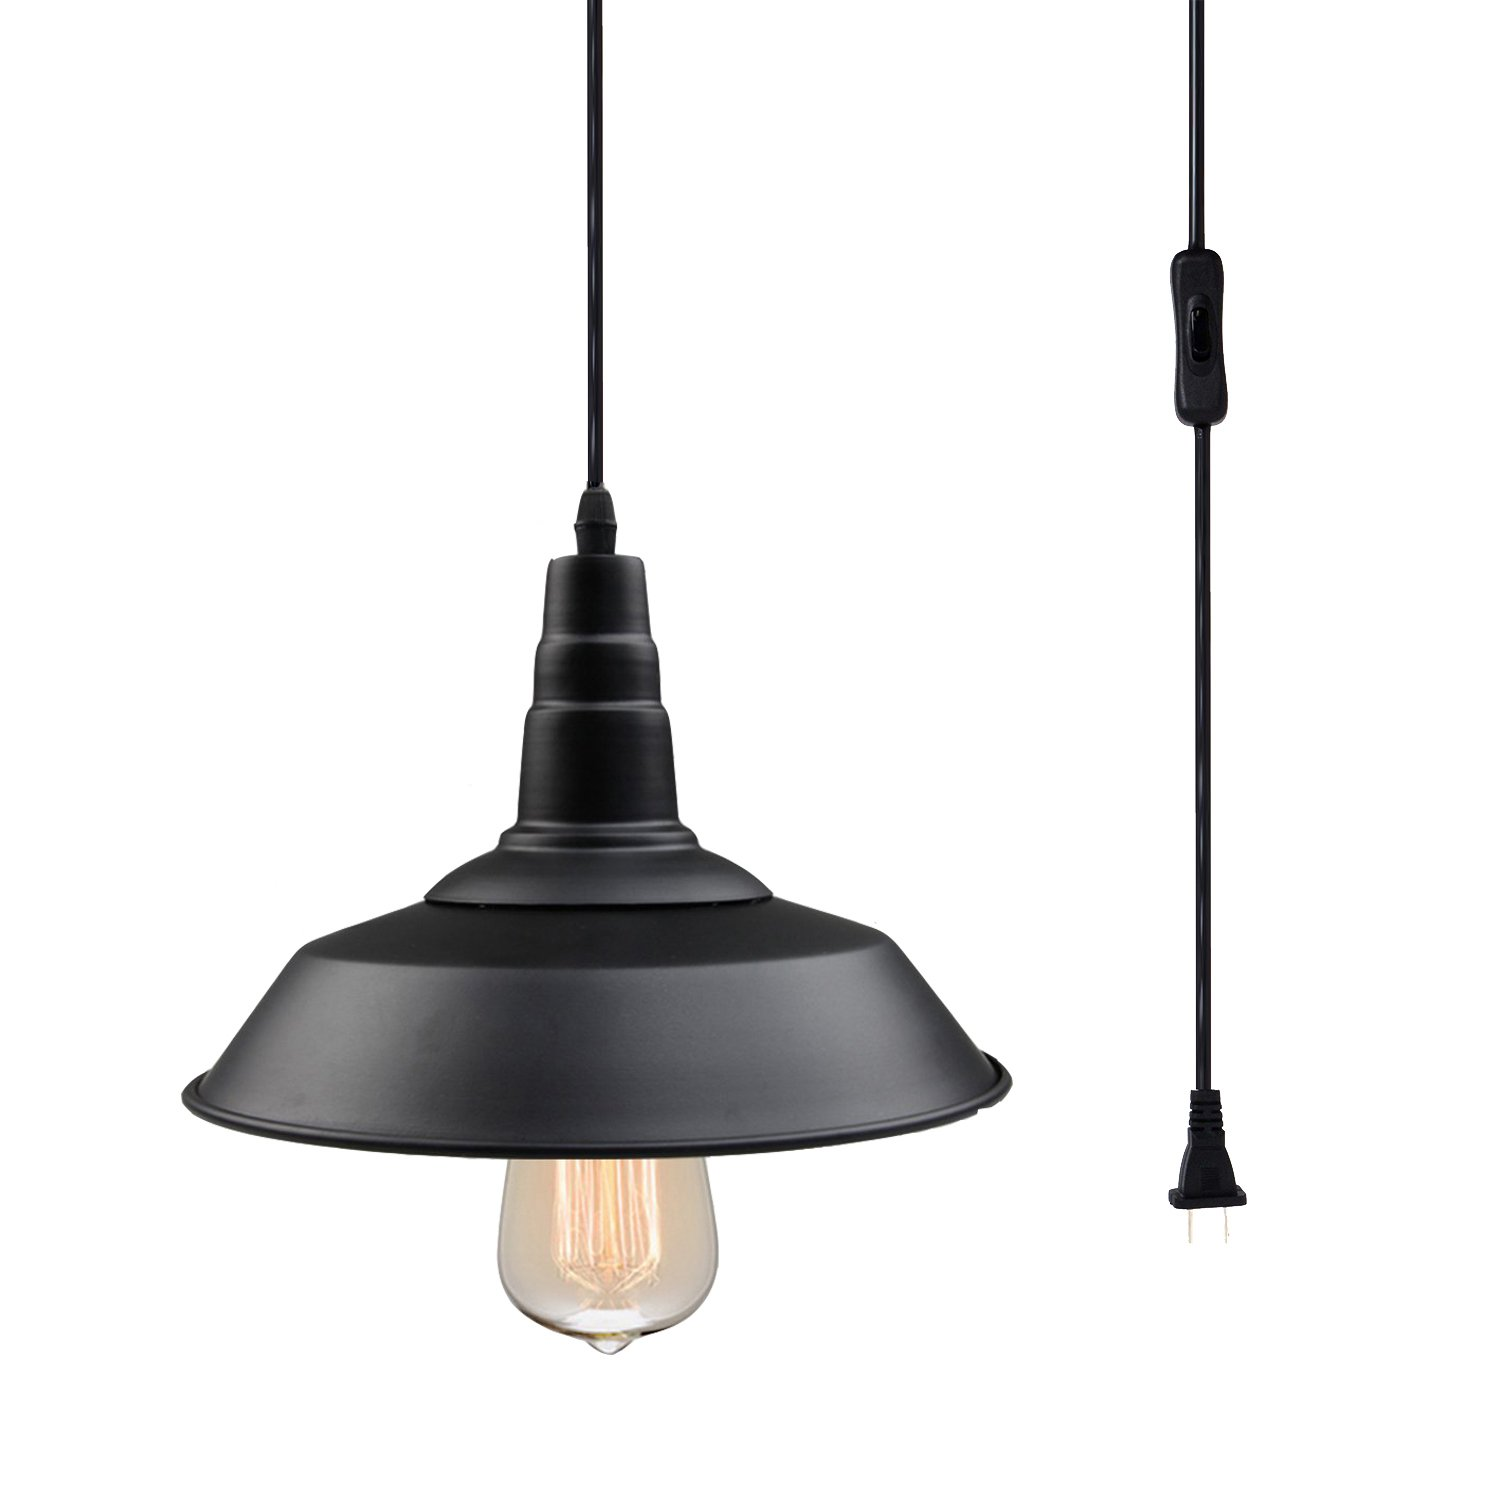 Pauwer Plug in Pendant Light Fixture Industrial Metal Black Warehouse Hanging Pendant Lamp with On/Off Switch in Line